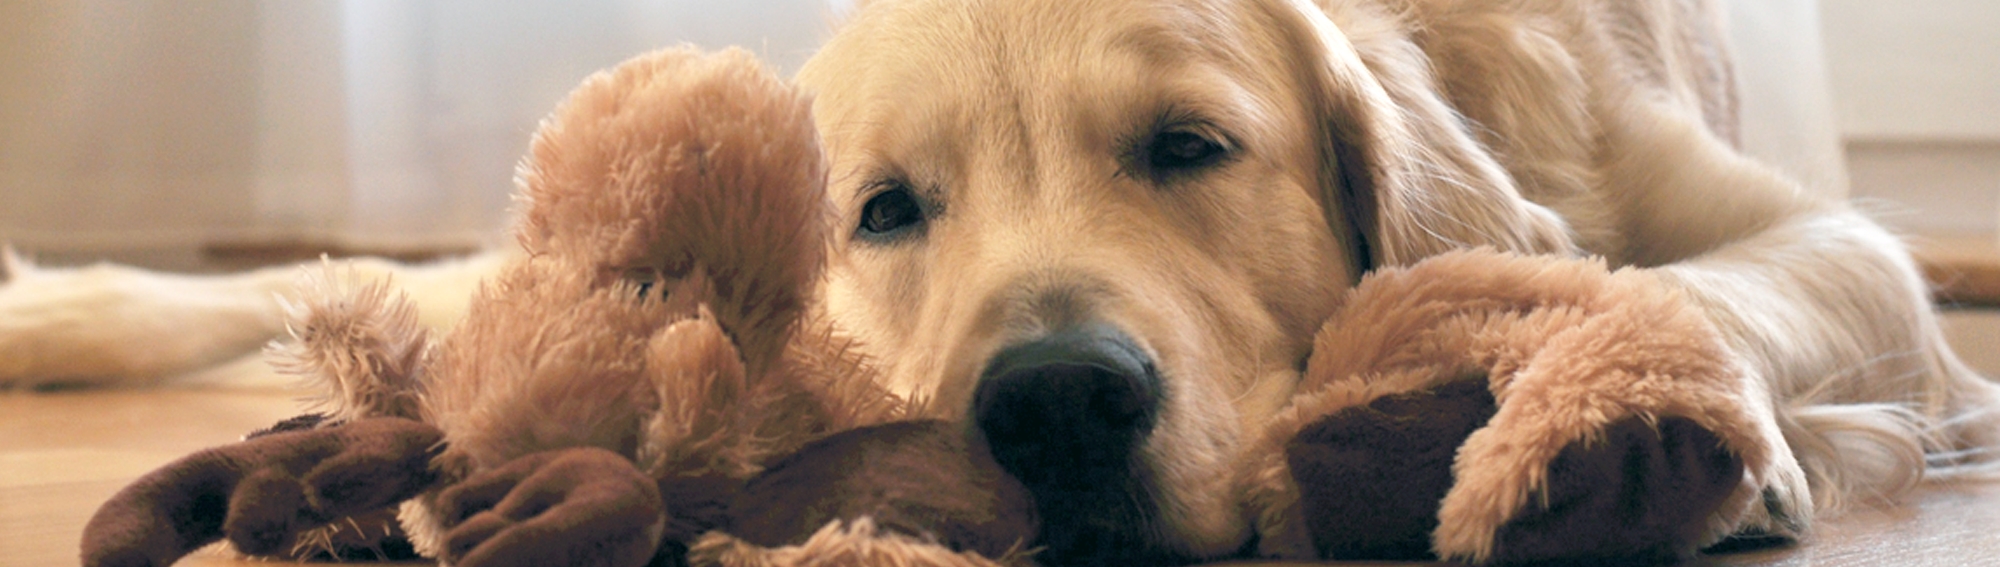 Pet Protect Header Image